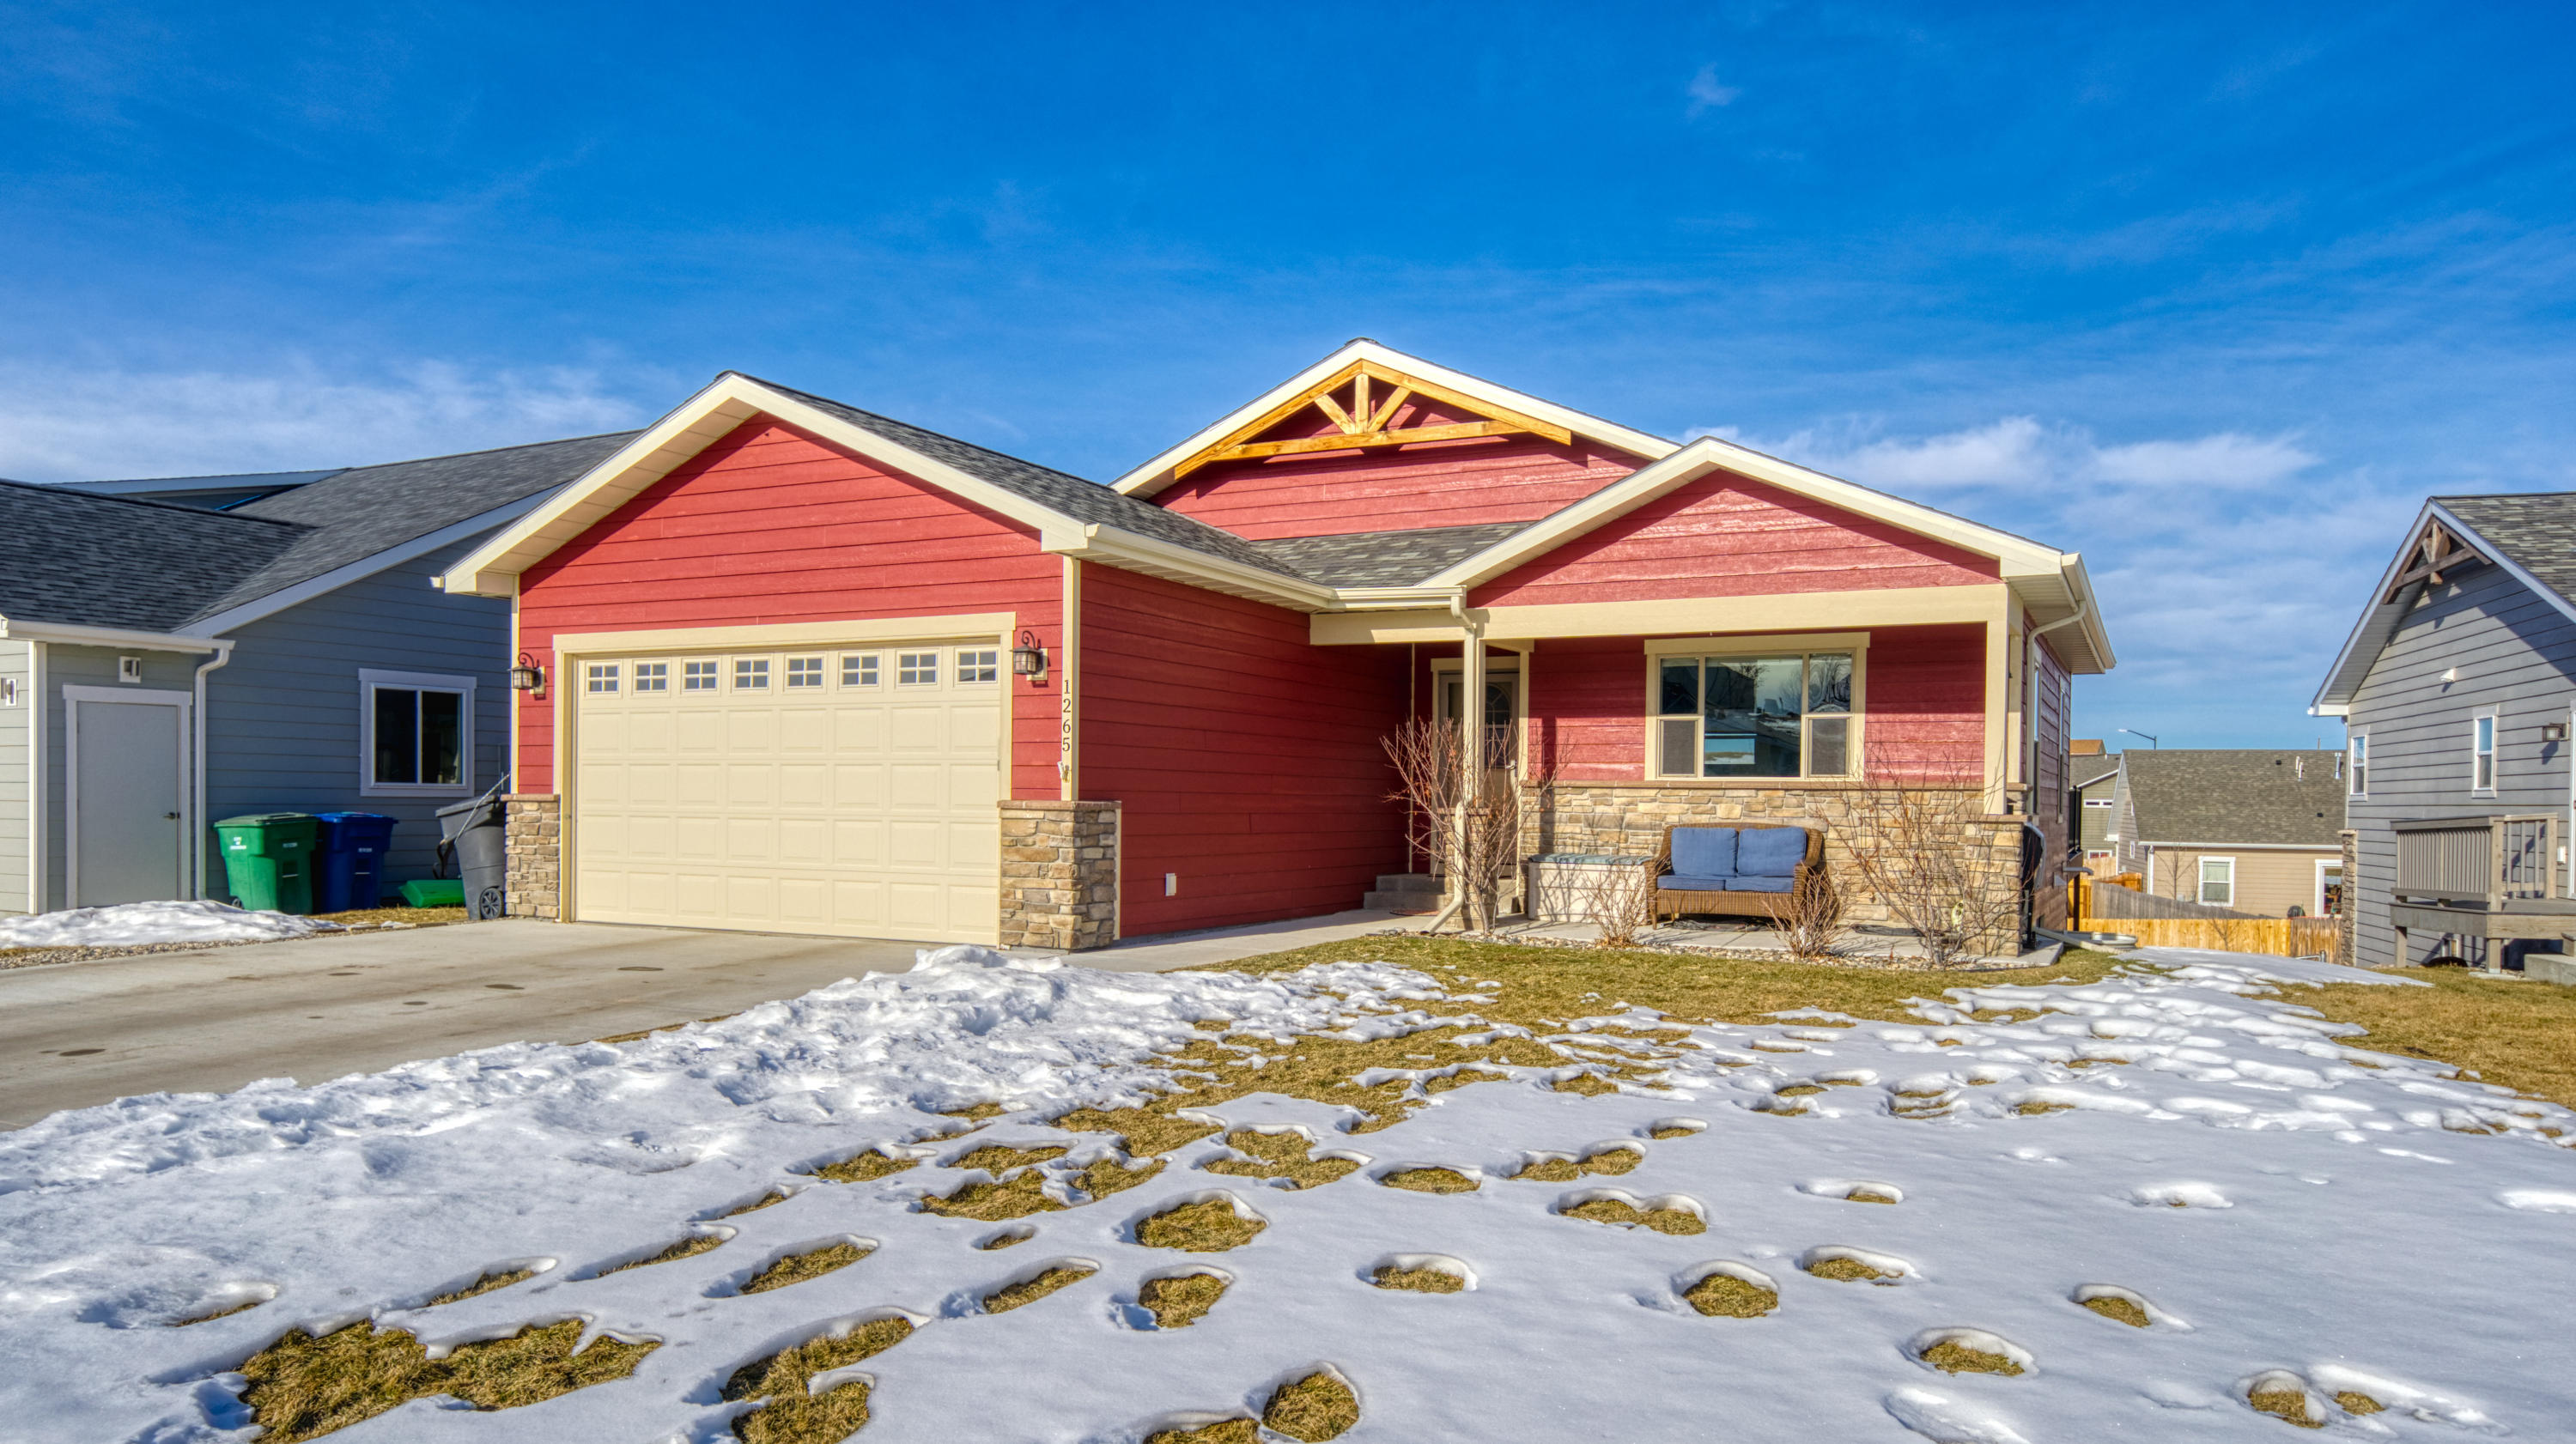 1265 Rosewood Court, Sheridan, Wyoming 82801, 4 Bedrooms Bedrooms, ,3 BathroomsBathrooms,Residential,For Sale,Rosewood,19-68